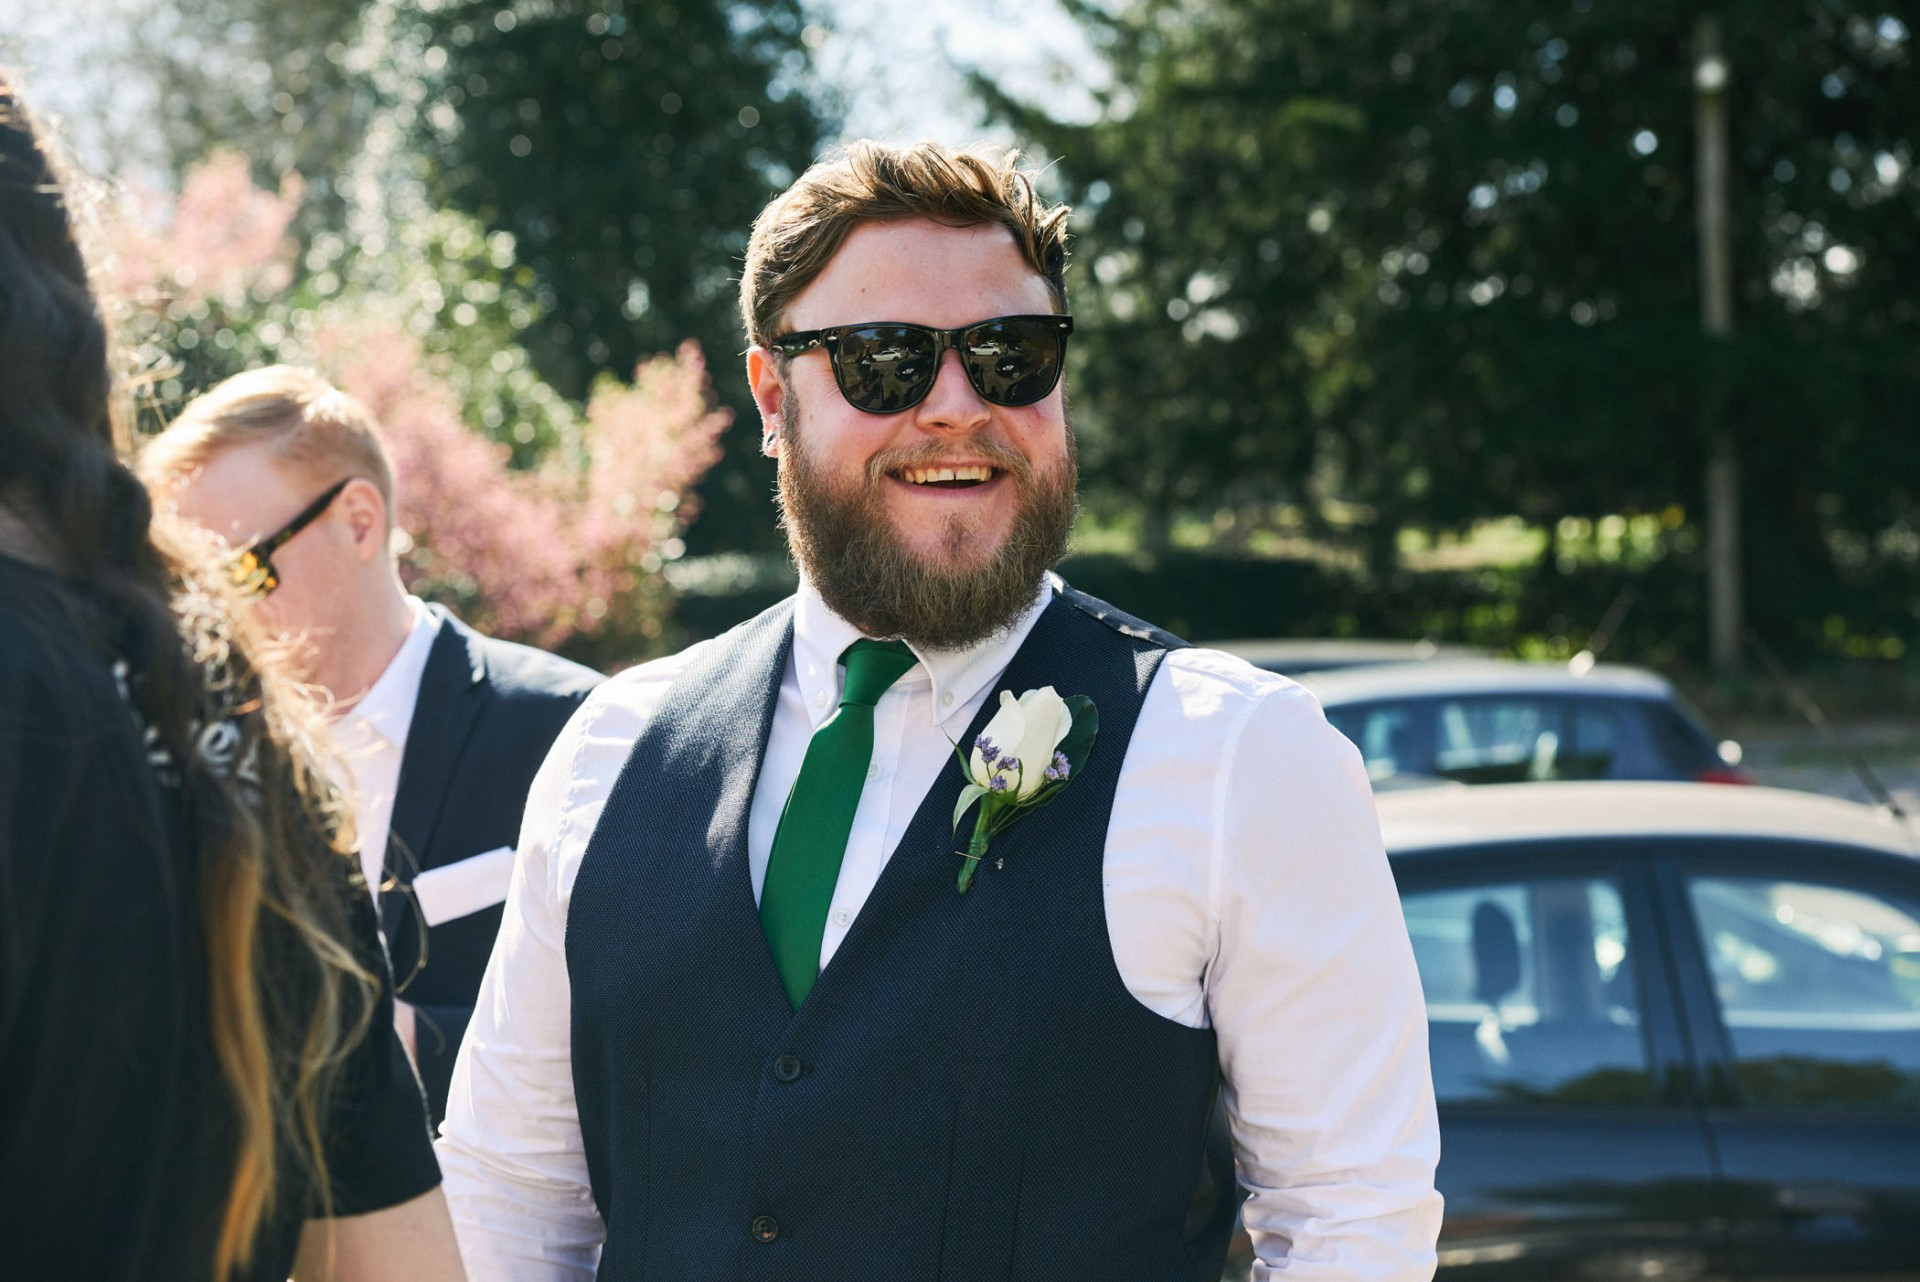 Natural wedding guest smiling whilst stood outside in a blue waistcoat